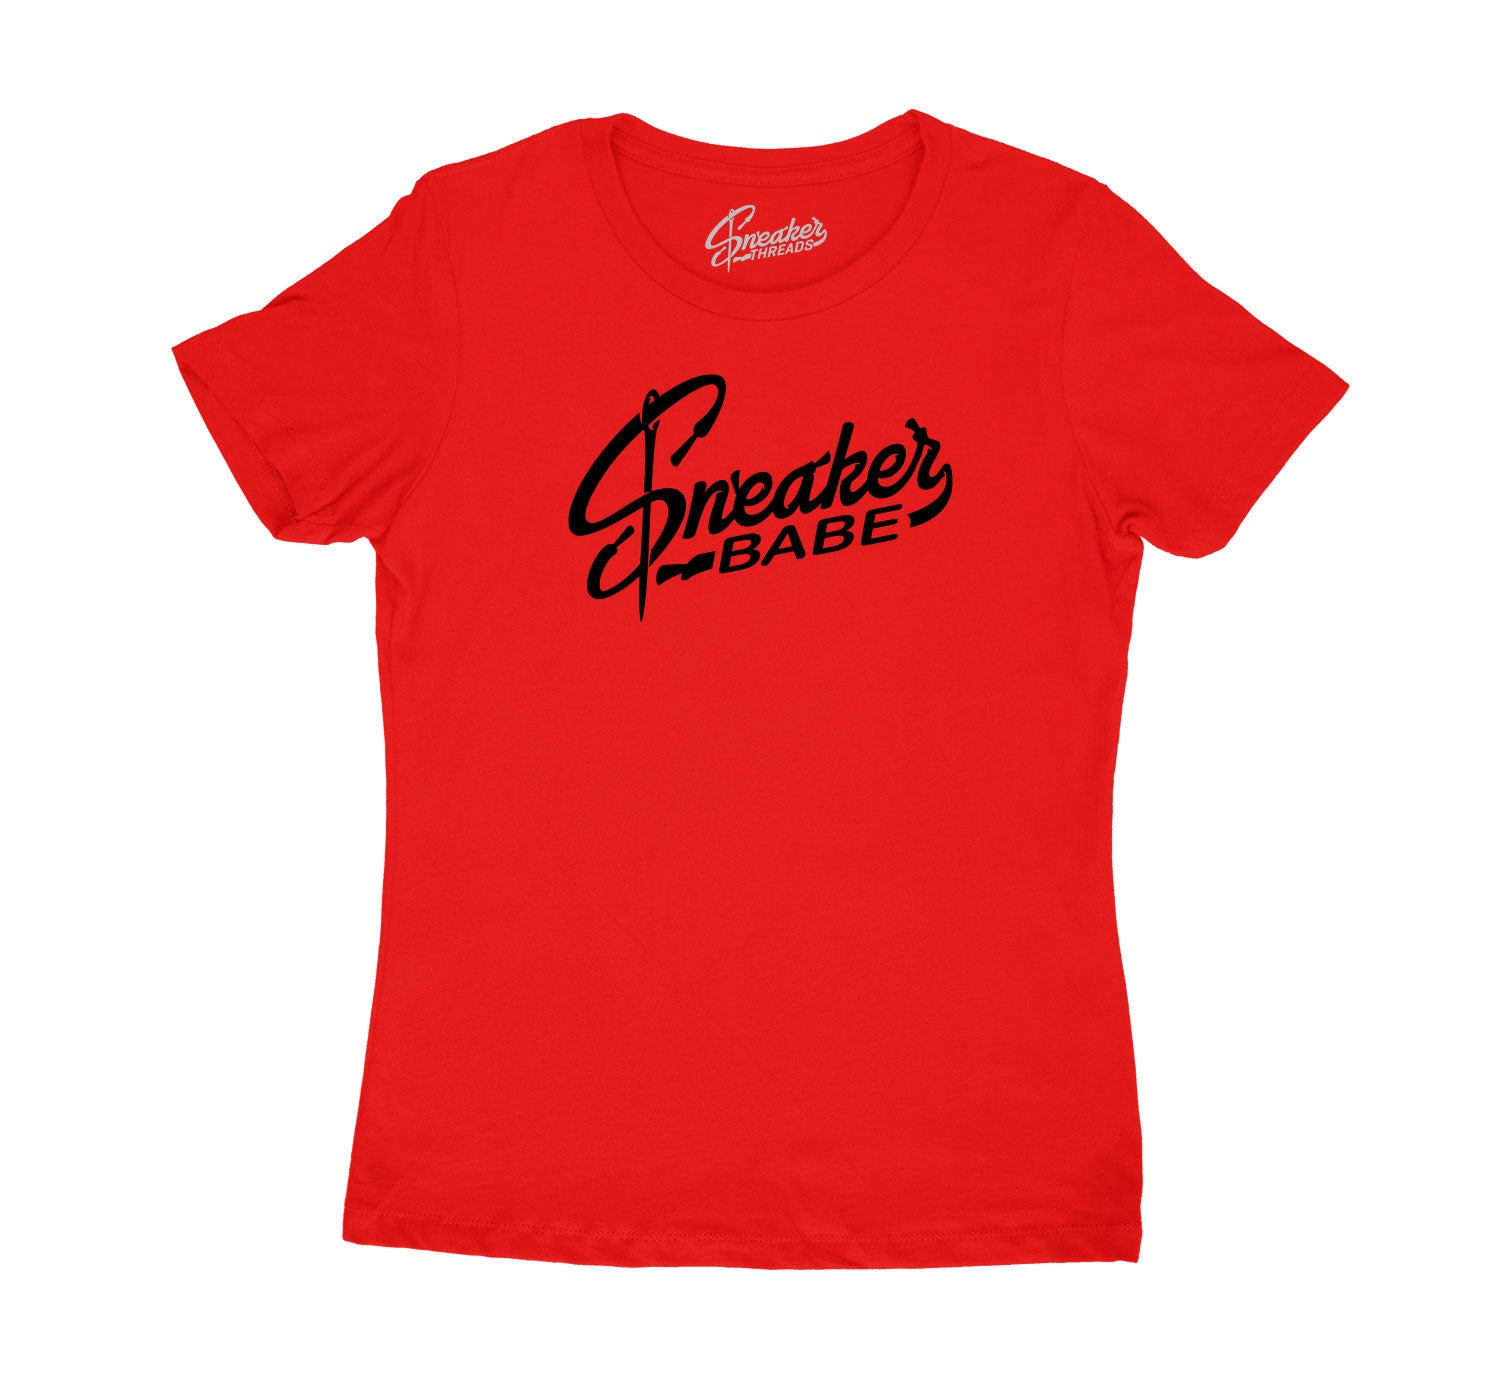 Womens Red Cement 3 Shirt - Sneaker Babe Logo - Red